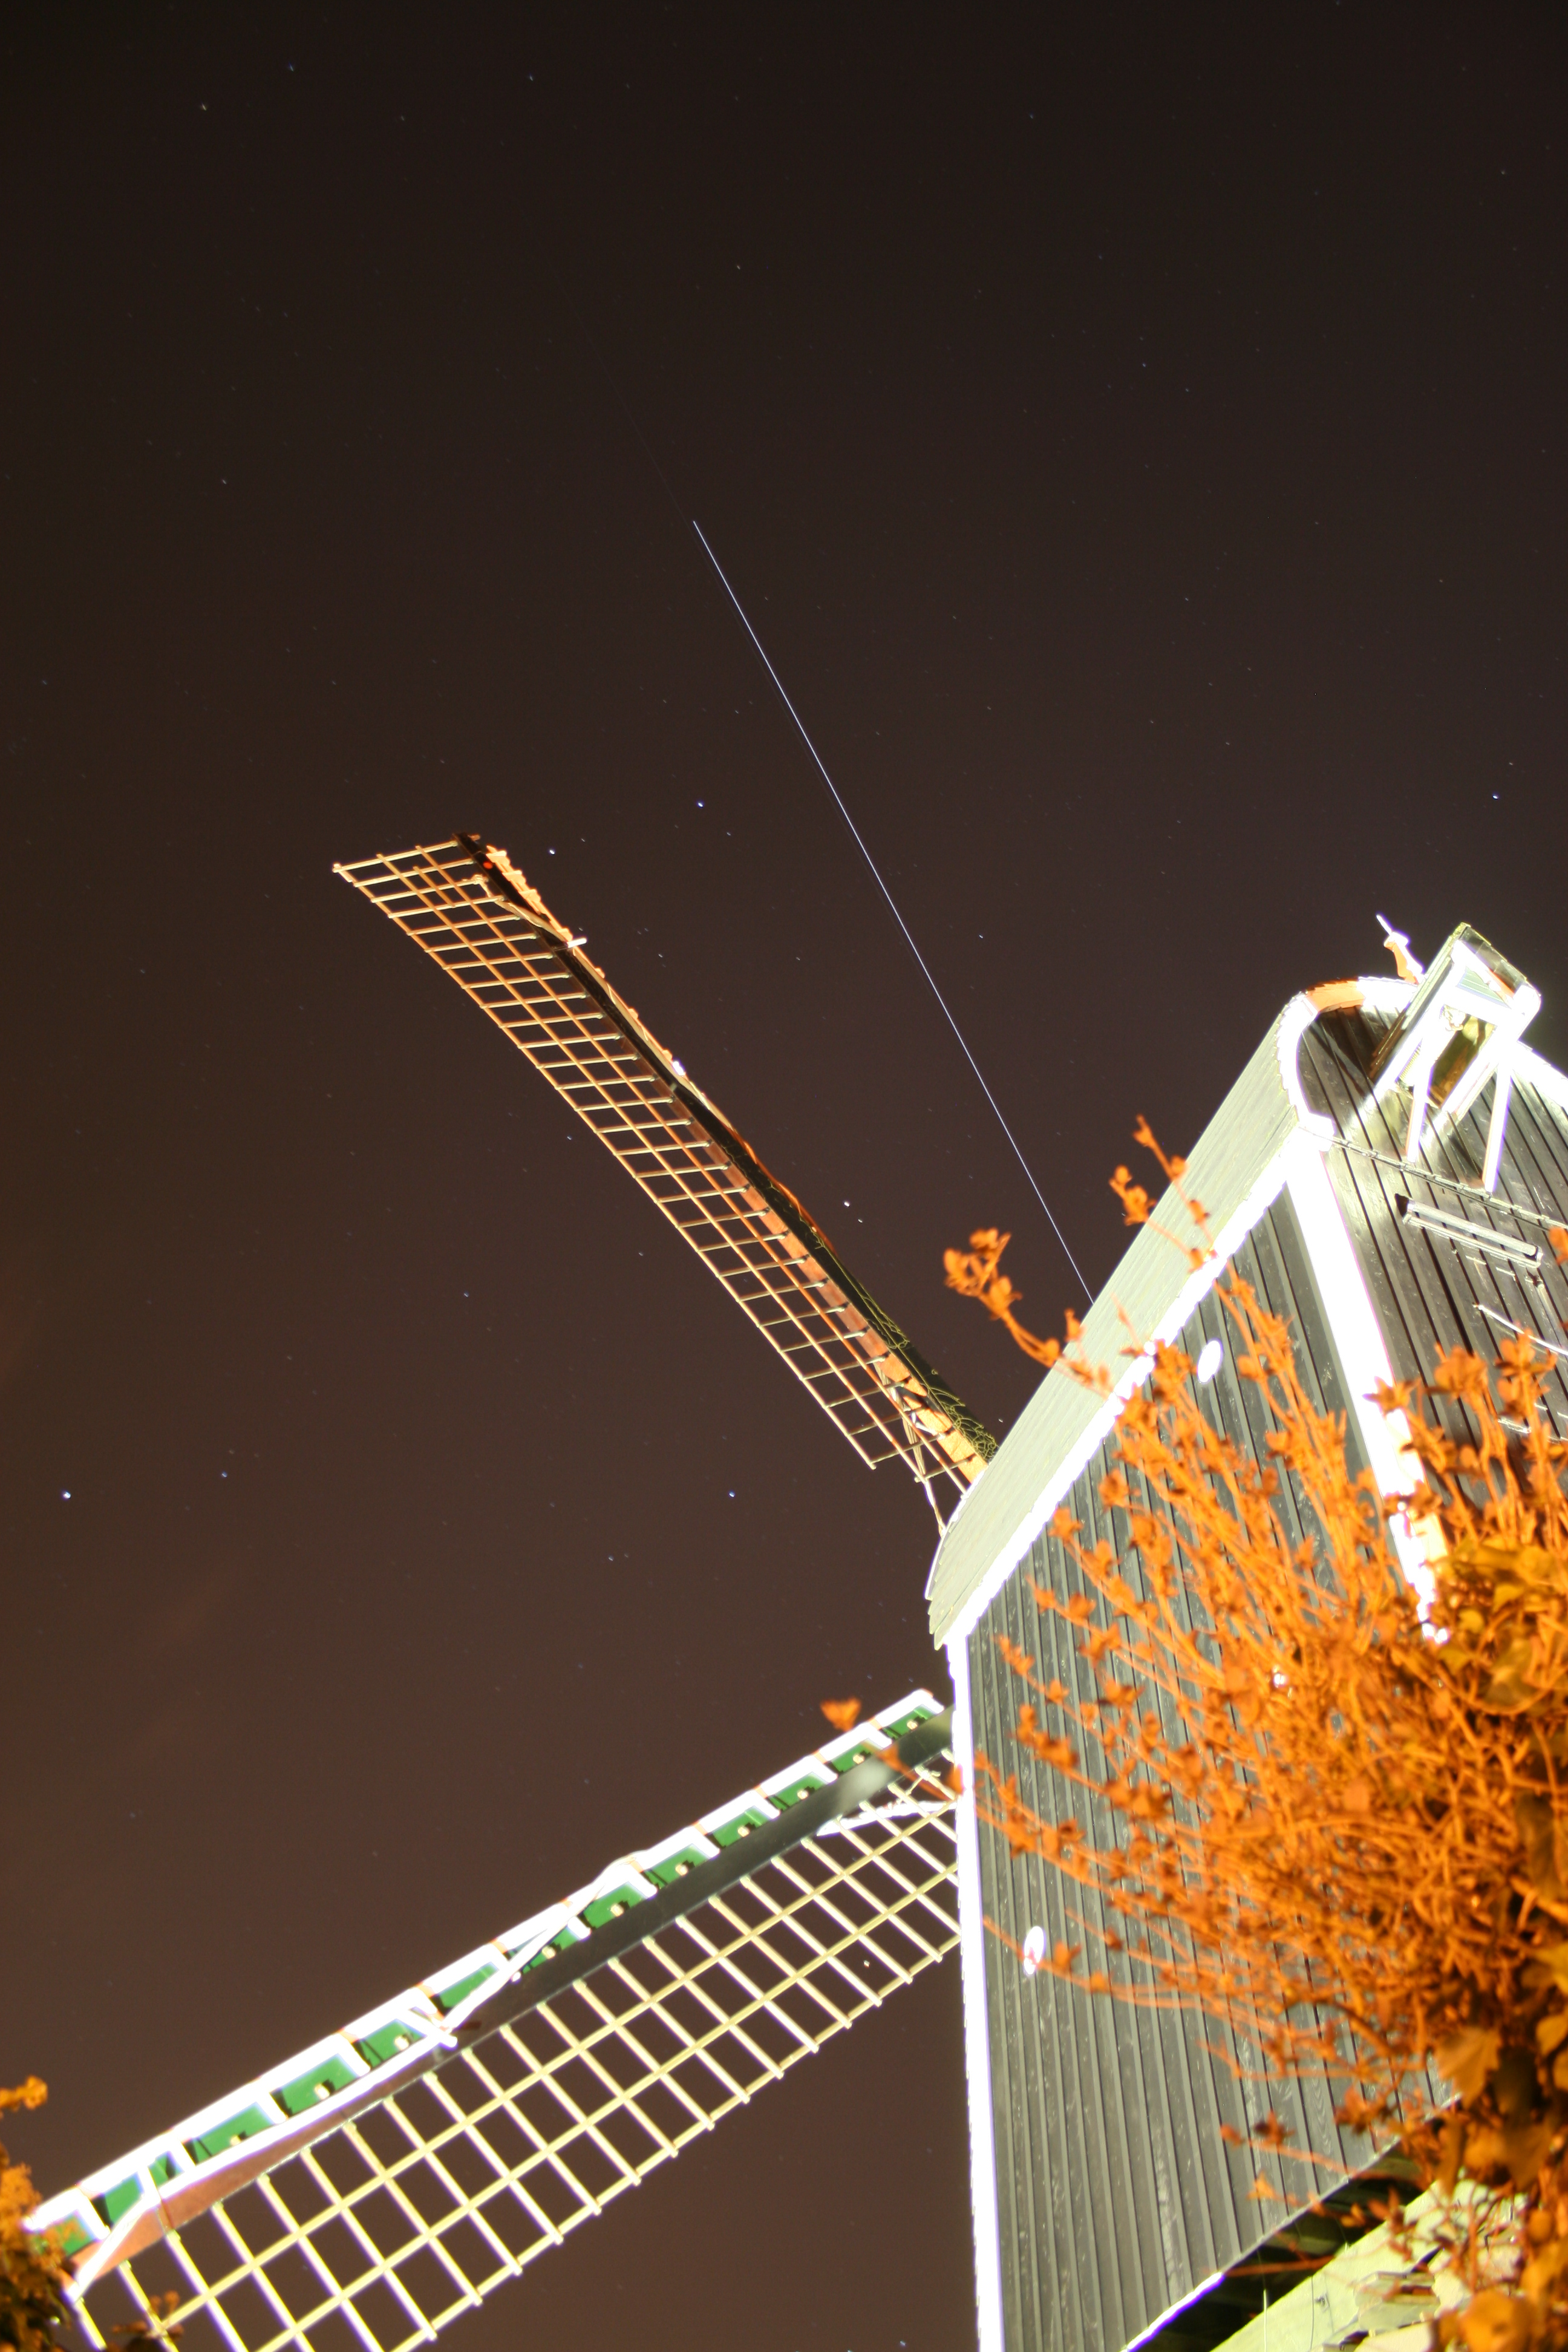 ISS and ATV pass over Leiden